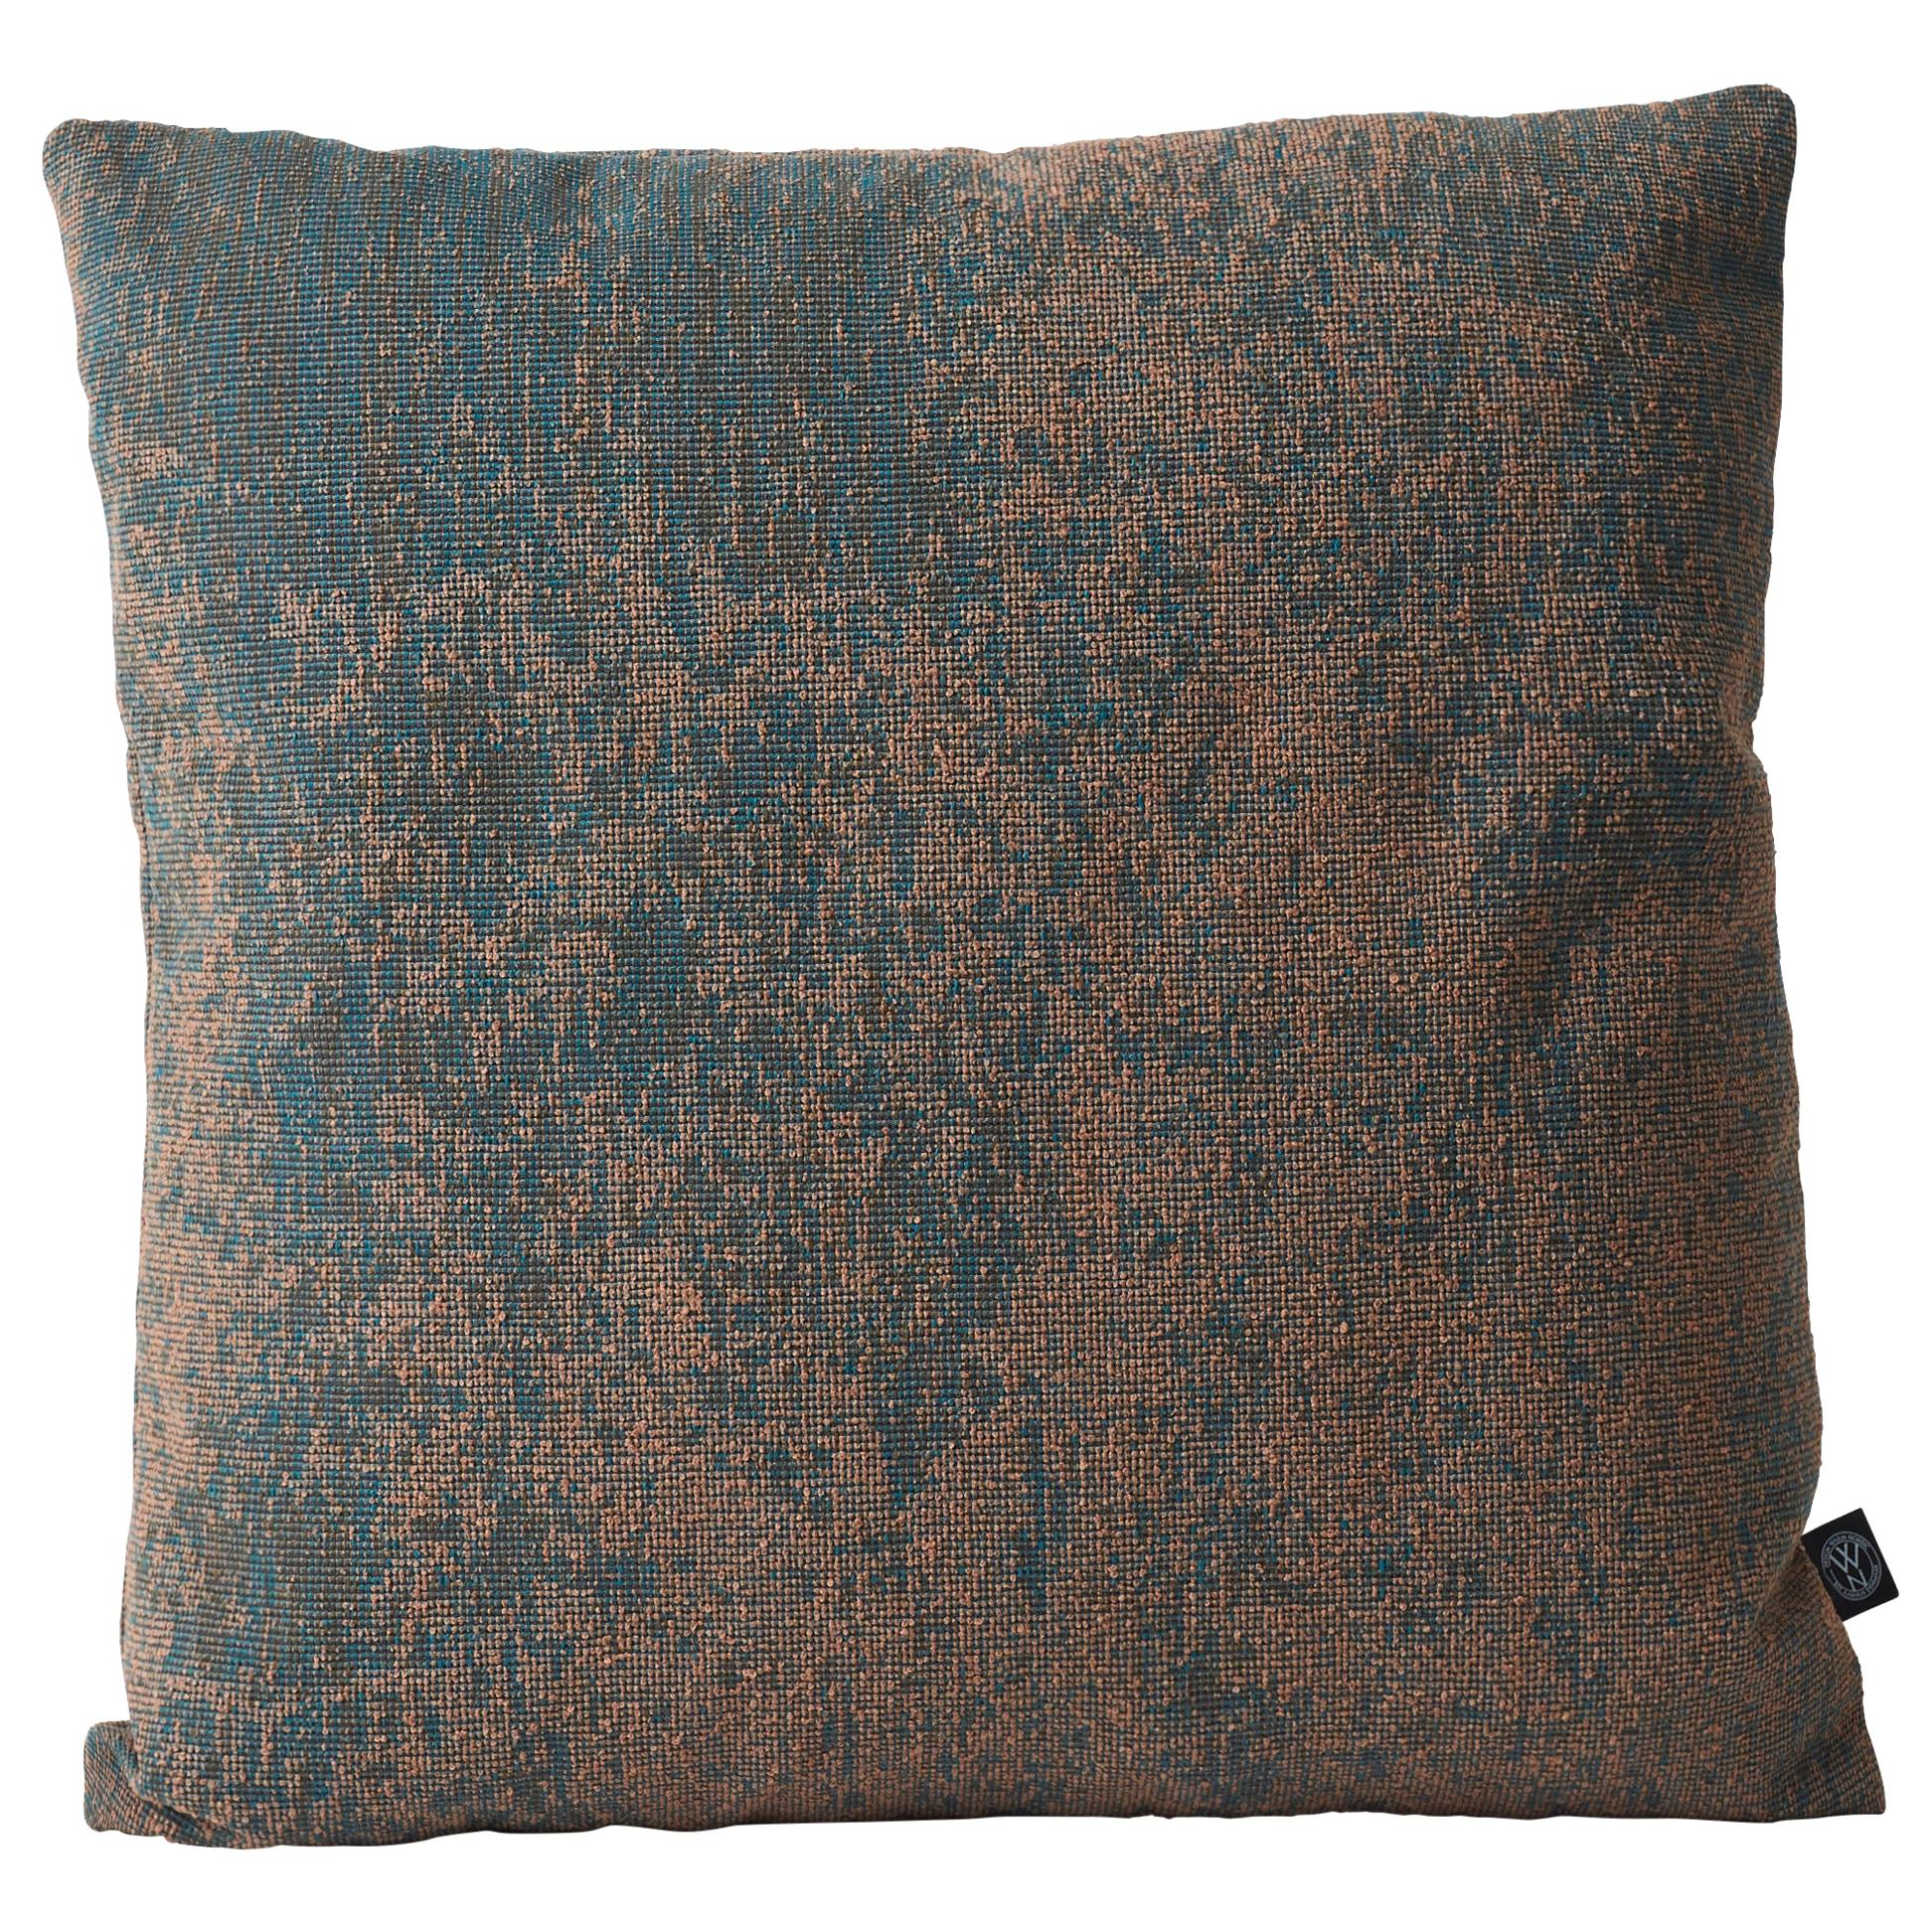 Small Memory Square Cushion or Throw Pillow by Warm Nordic